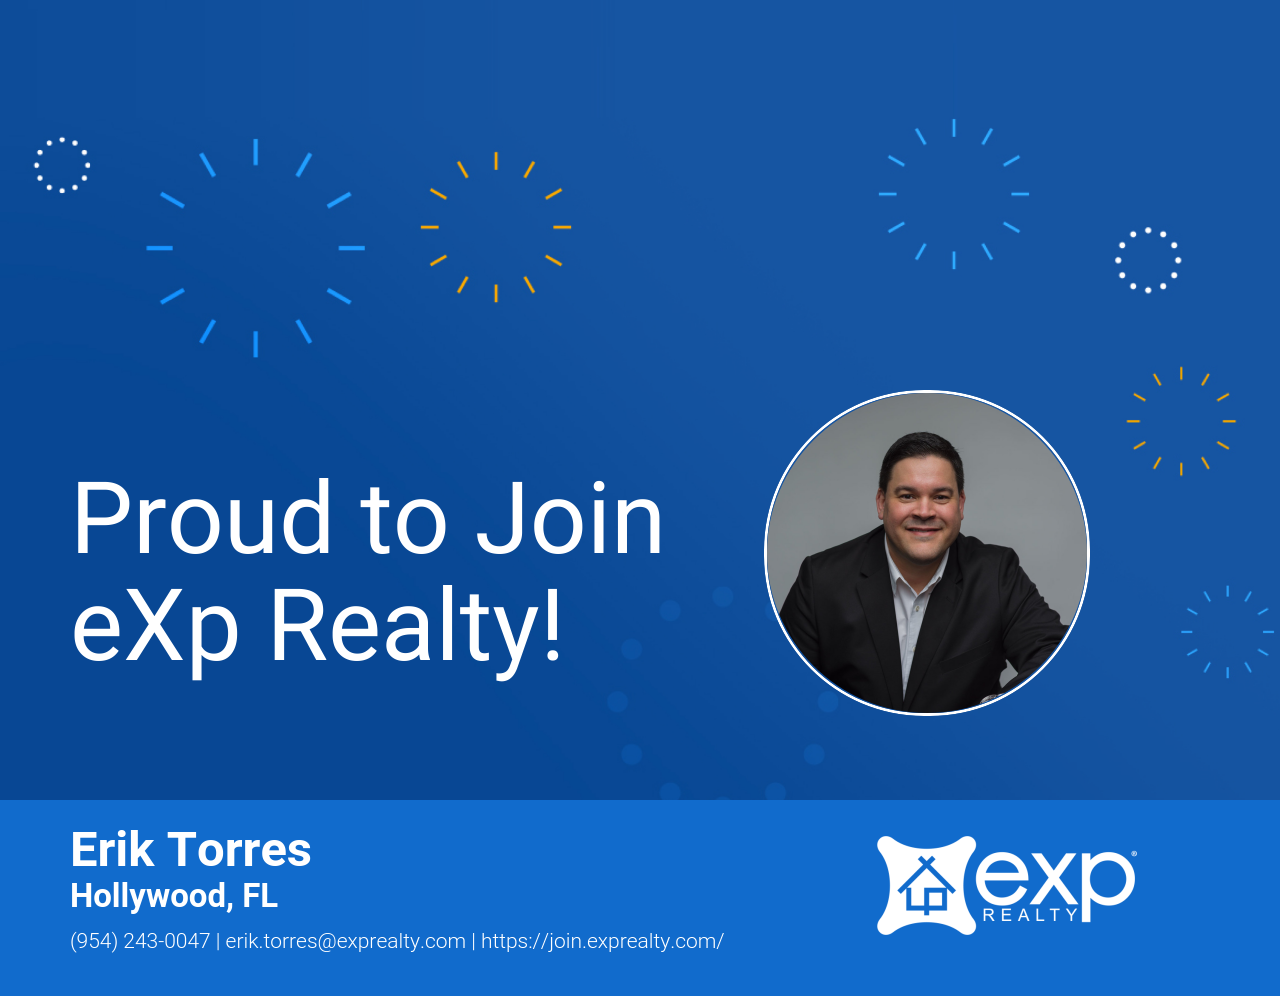 Welcome to eXp Realty Erik Torres!